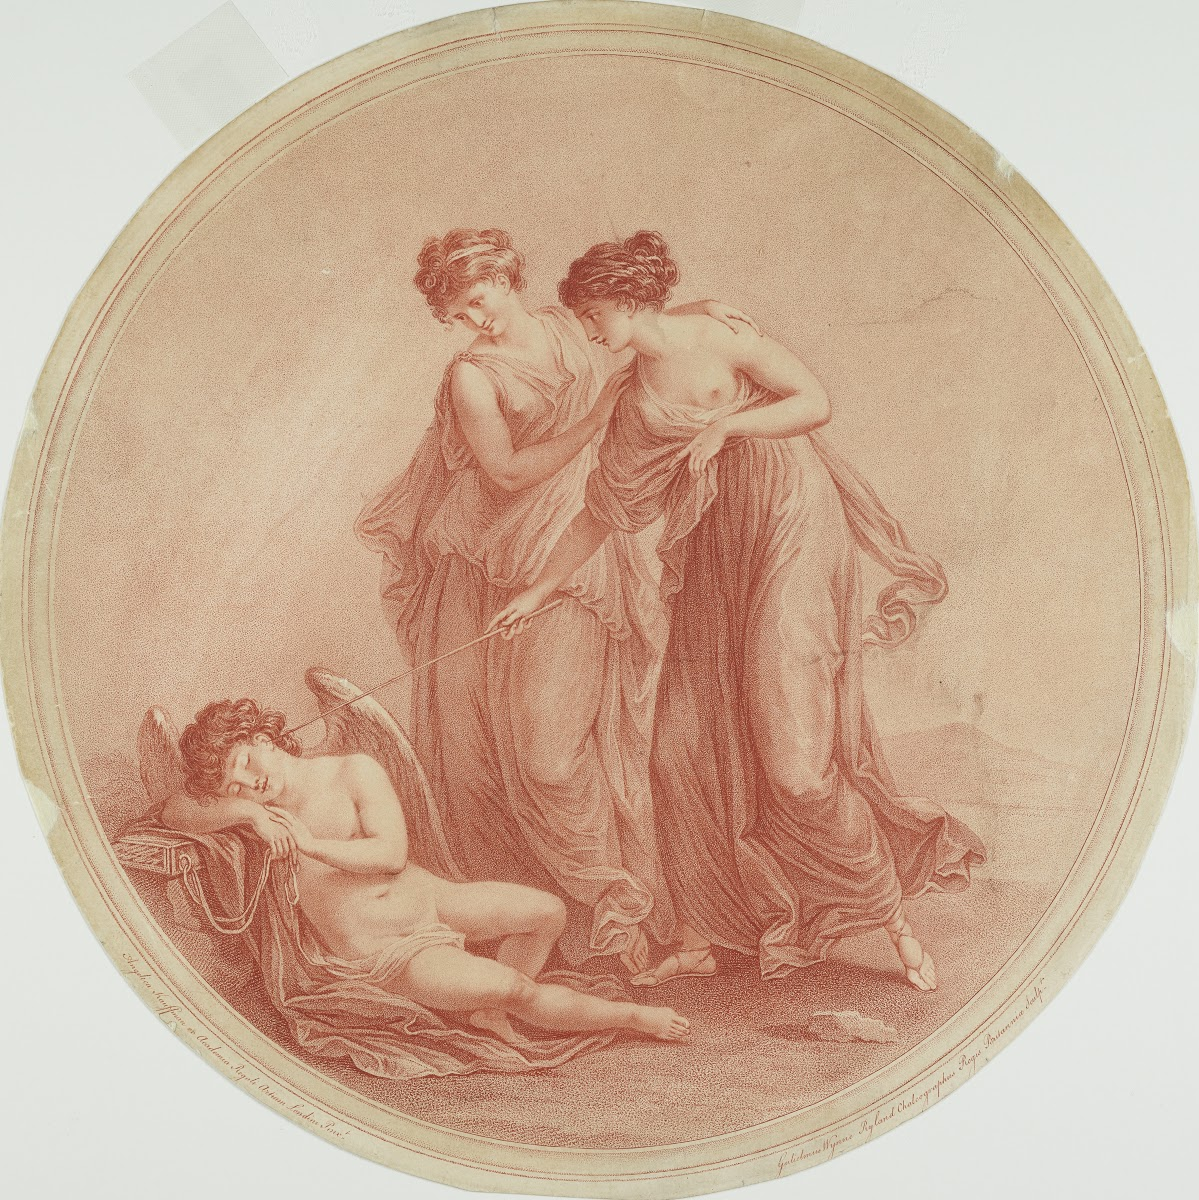 Angelica Kauffmann 1776 Les Graces reveillant l'Amour gravure de William Wynne Ryland